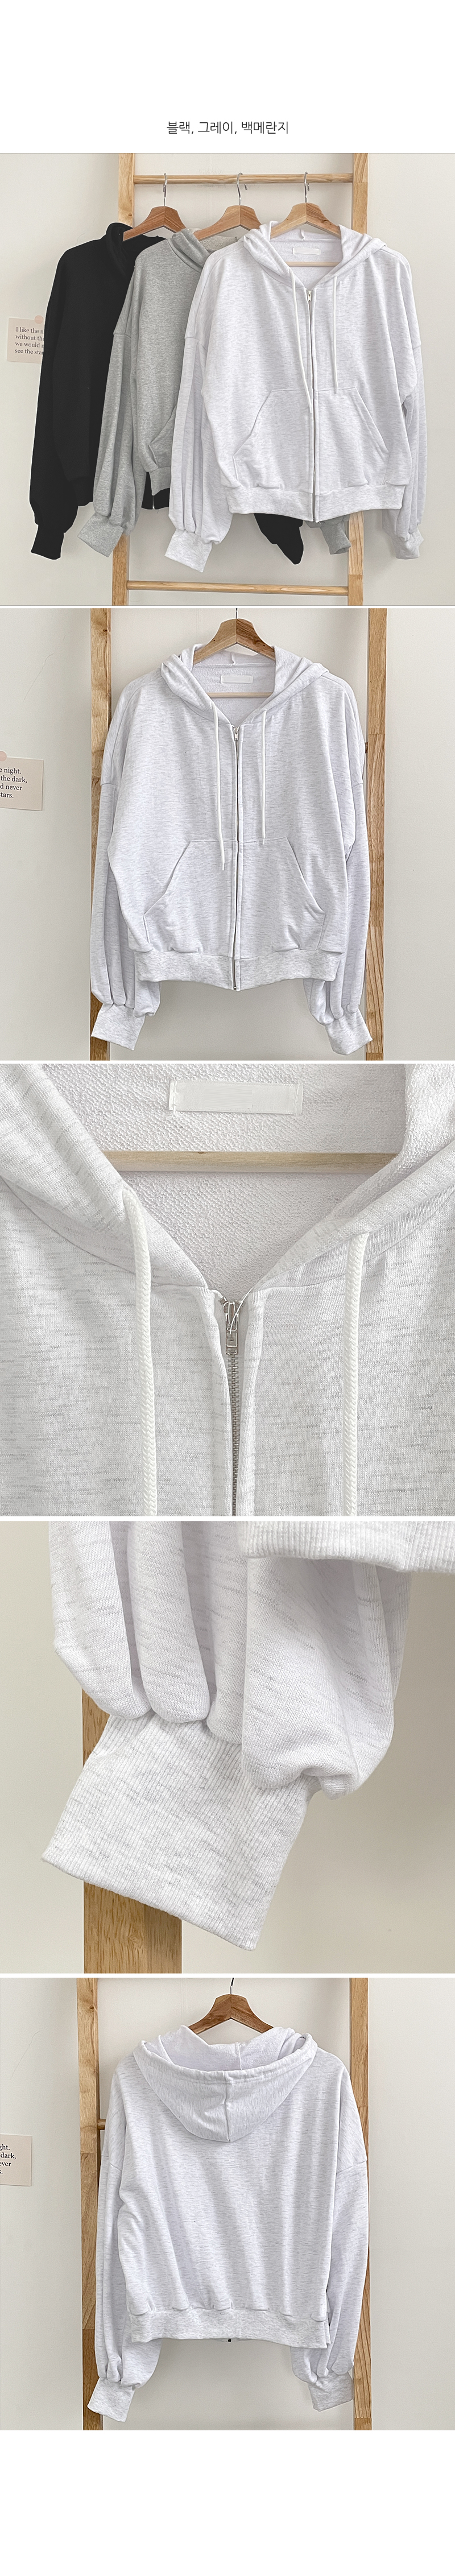 Lonely Loose-fit Hooded Zip-Up